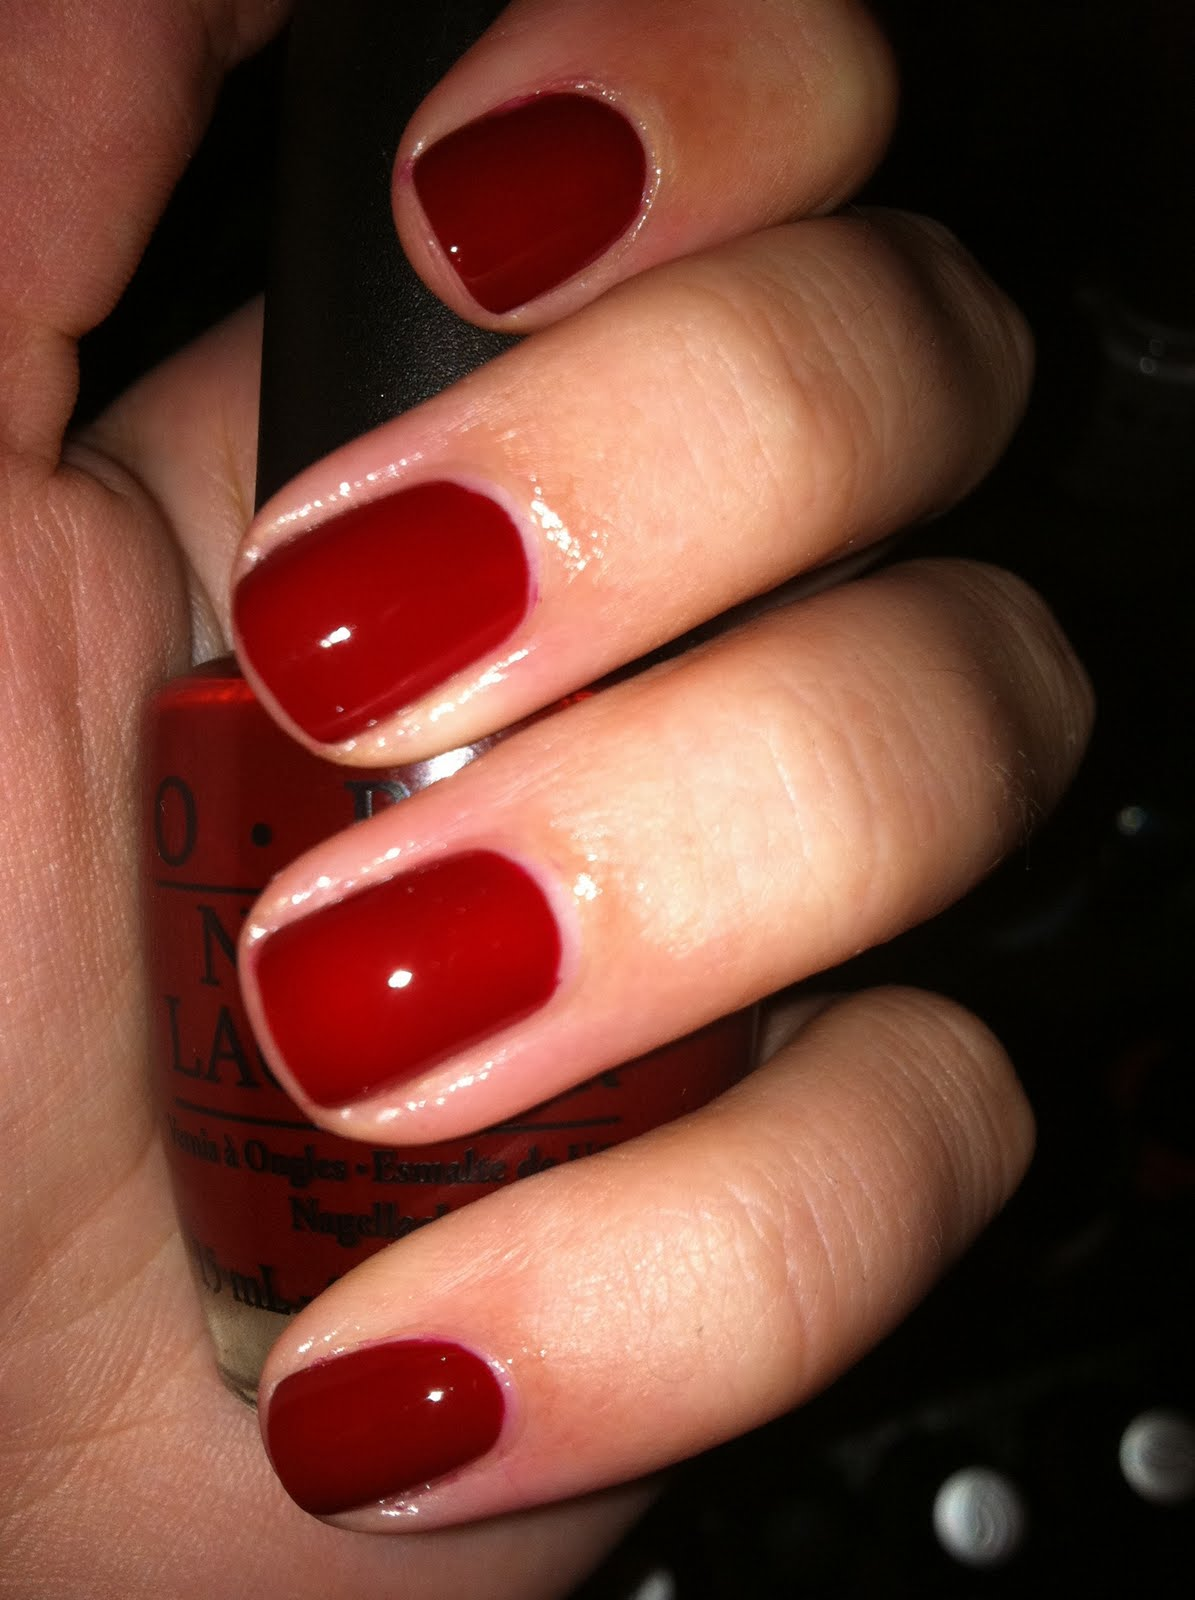 Got Red Nails For Prom Jems And Sparkles Were Added: [Contest] Budding Lacquerista Seeks Excellent Red